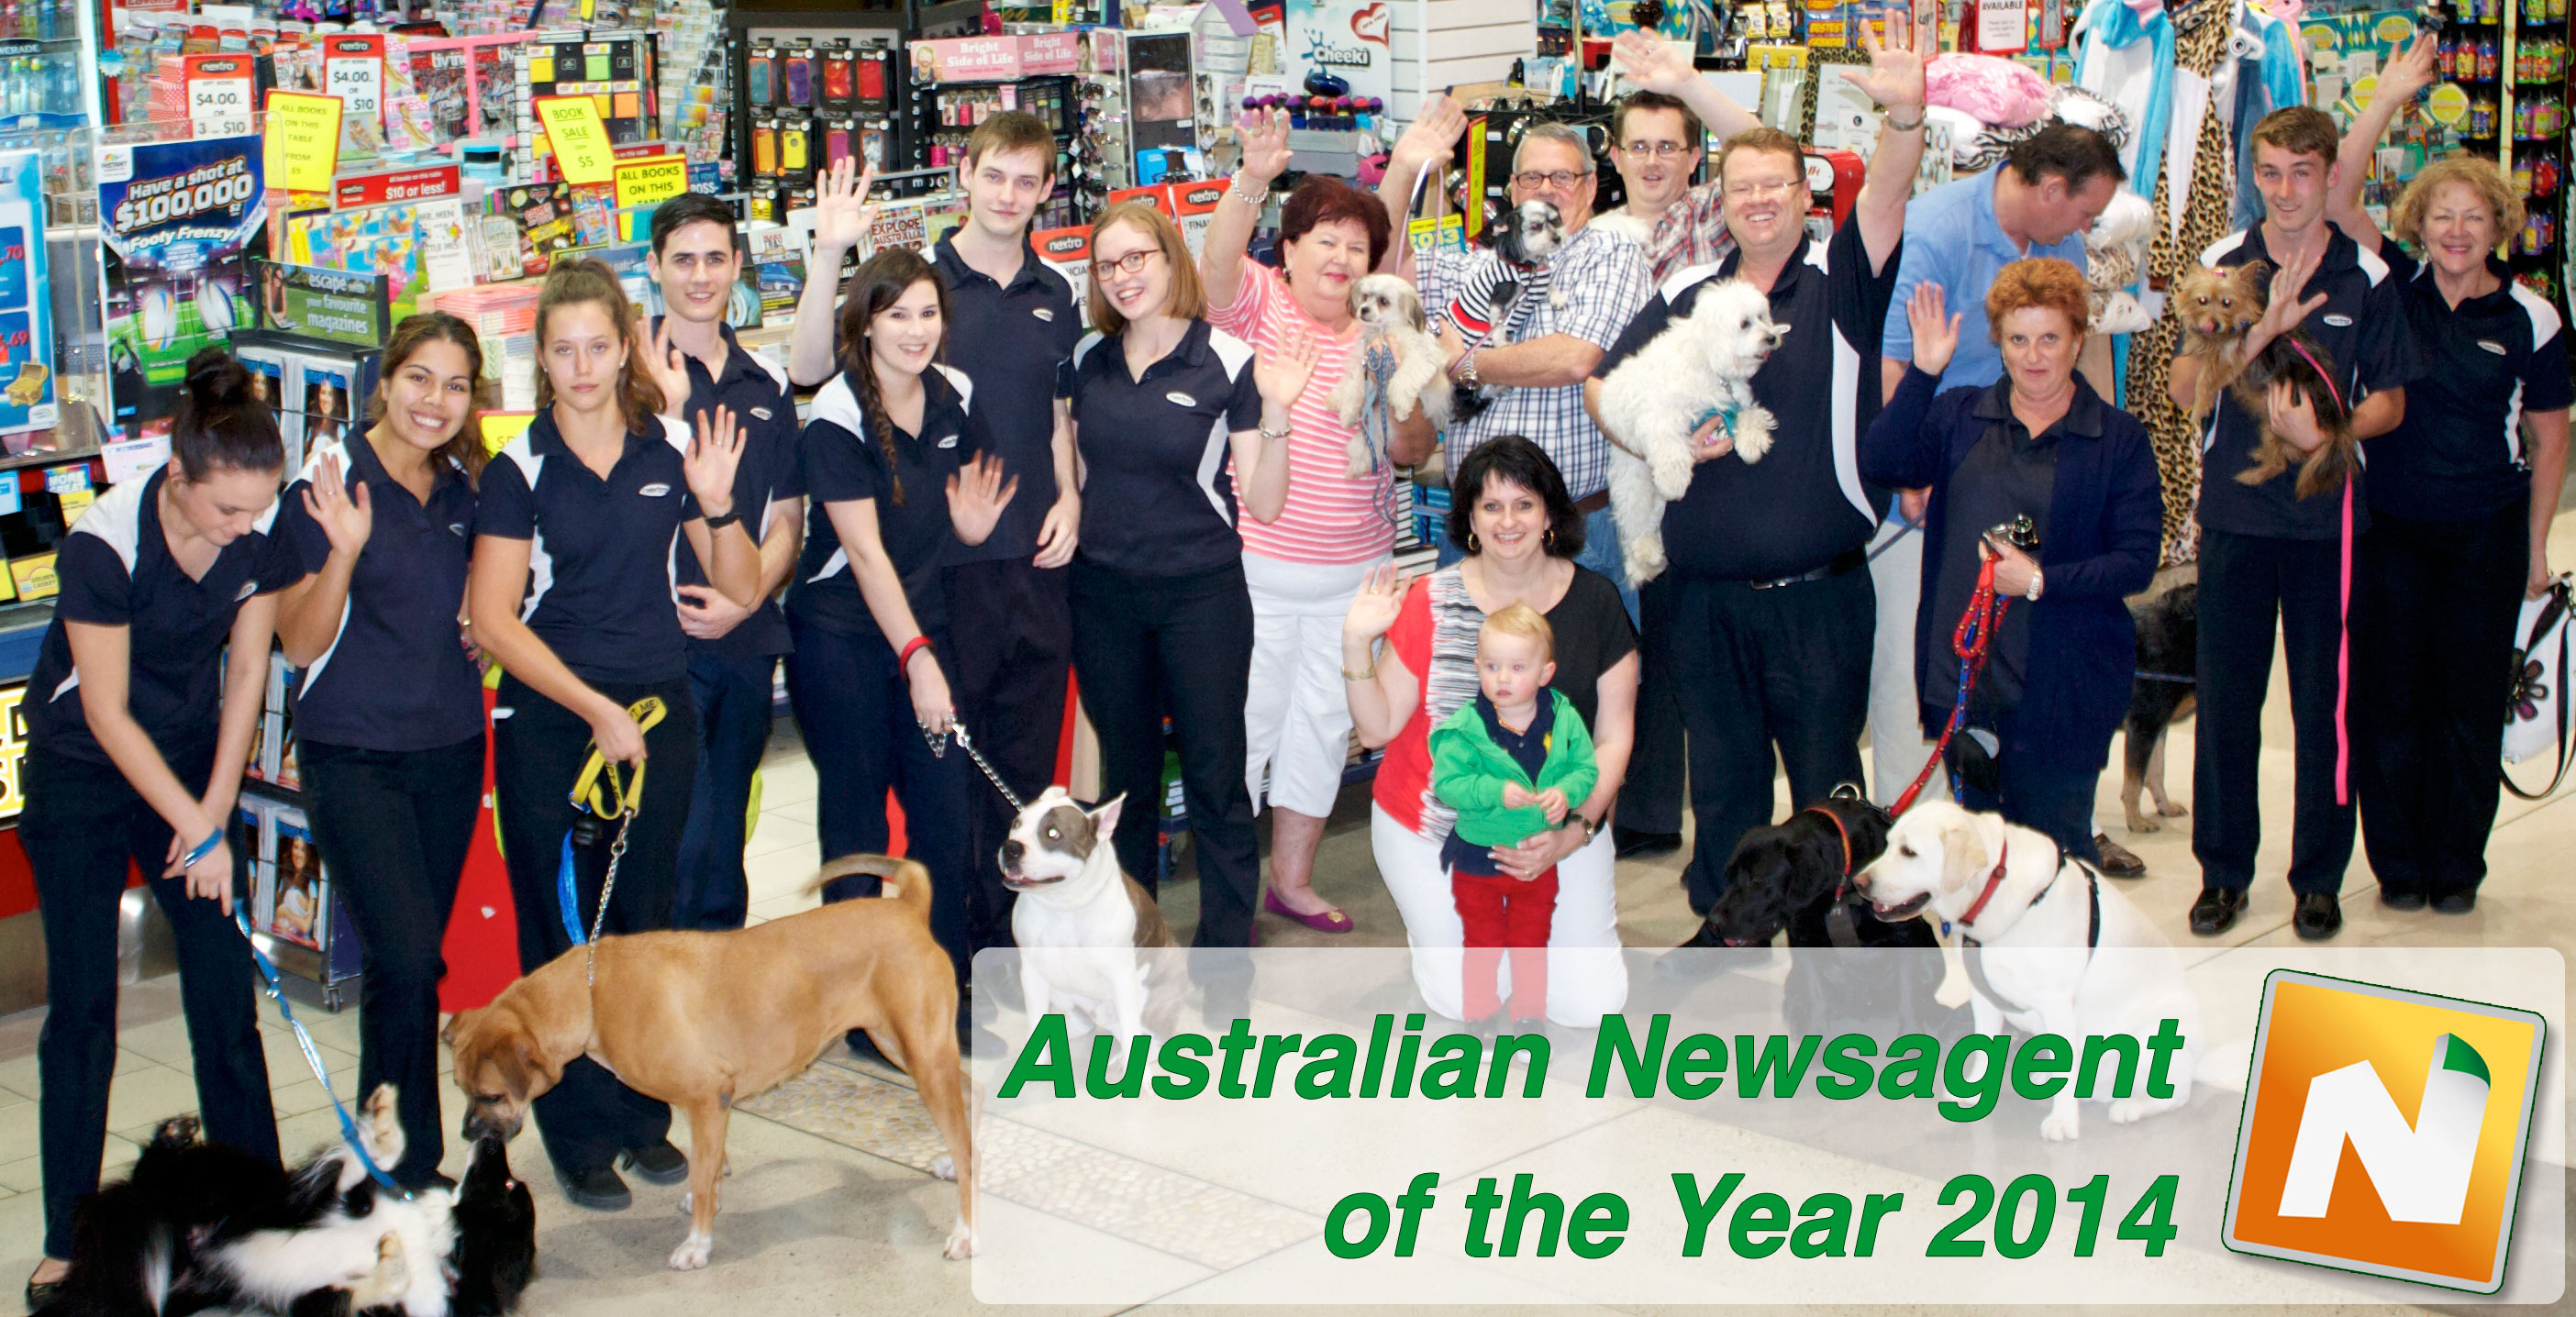 Nextra Chermside Newsagency Staff